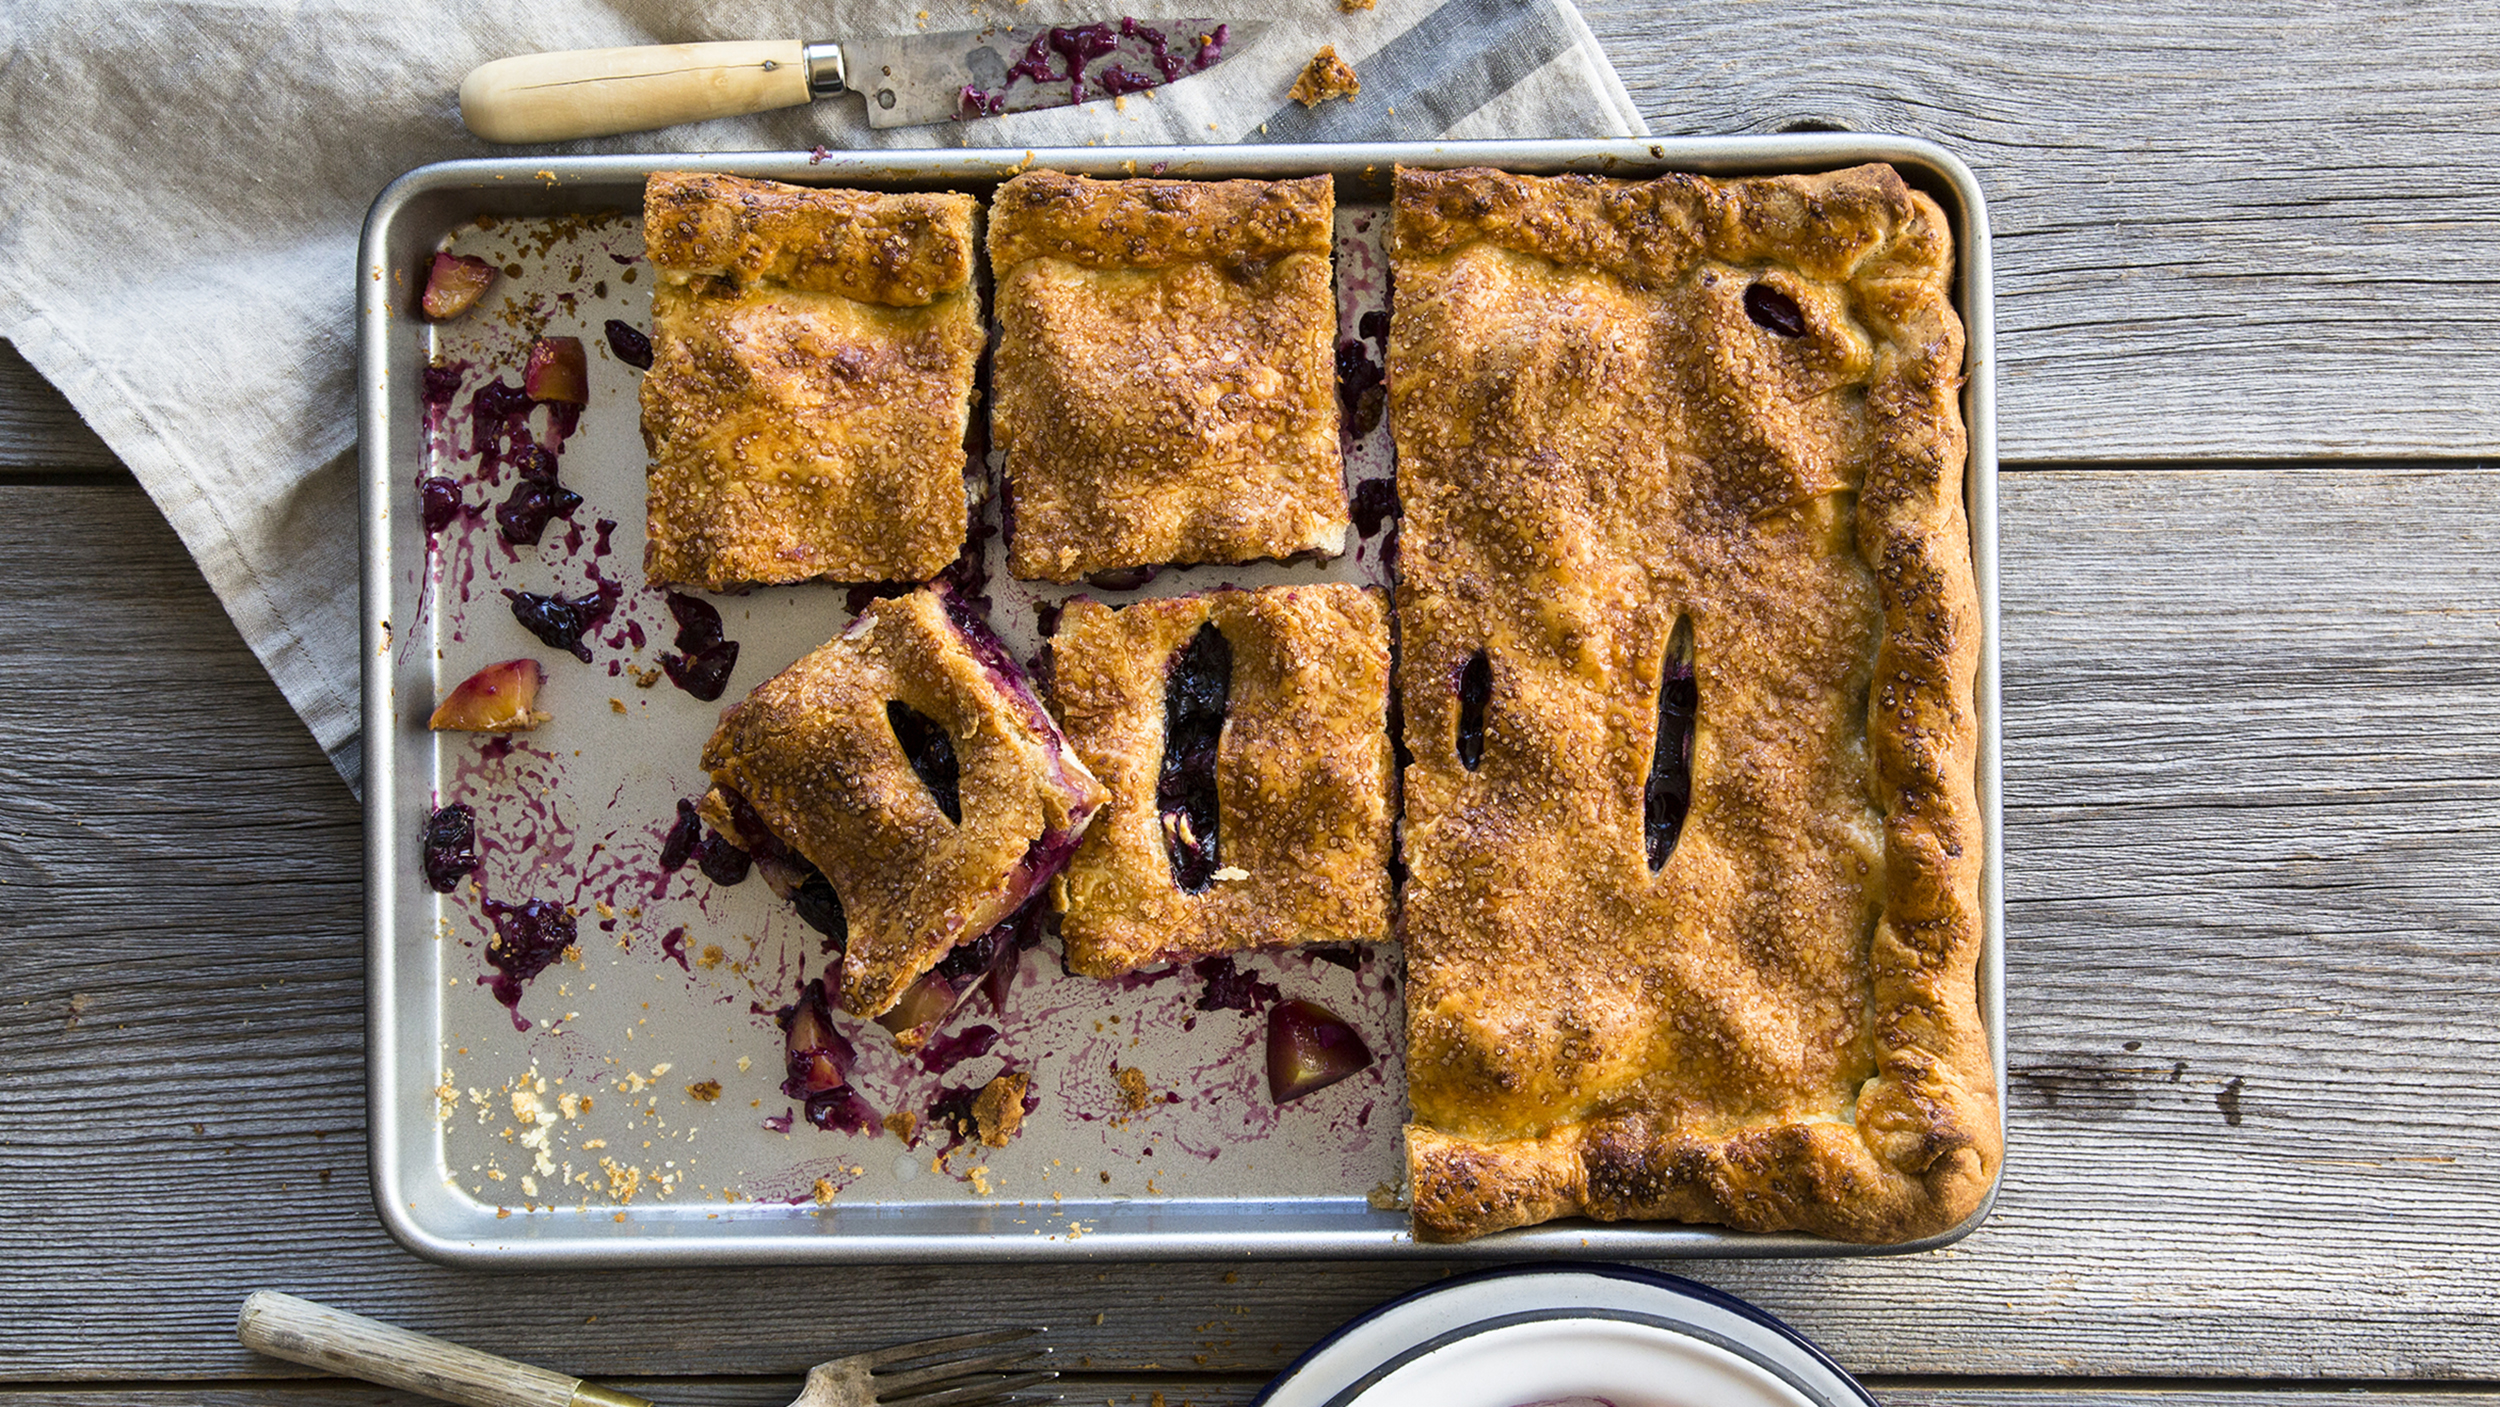 Peach-Blueberry Slab Pie with Sweet Almond Crust - TODAY.com